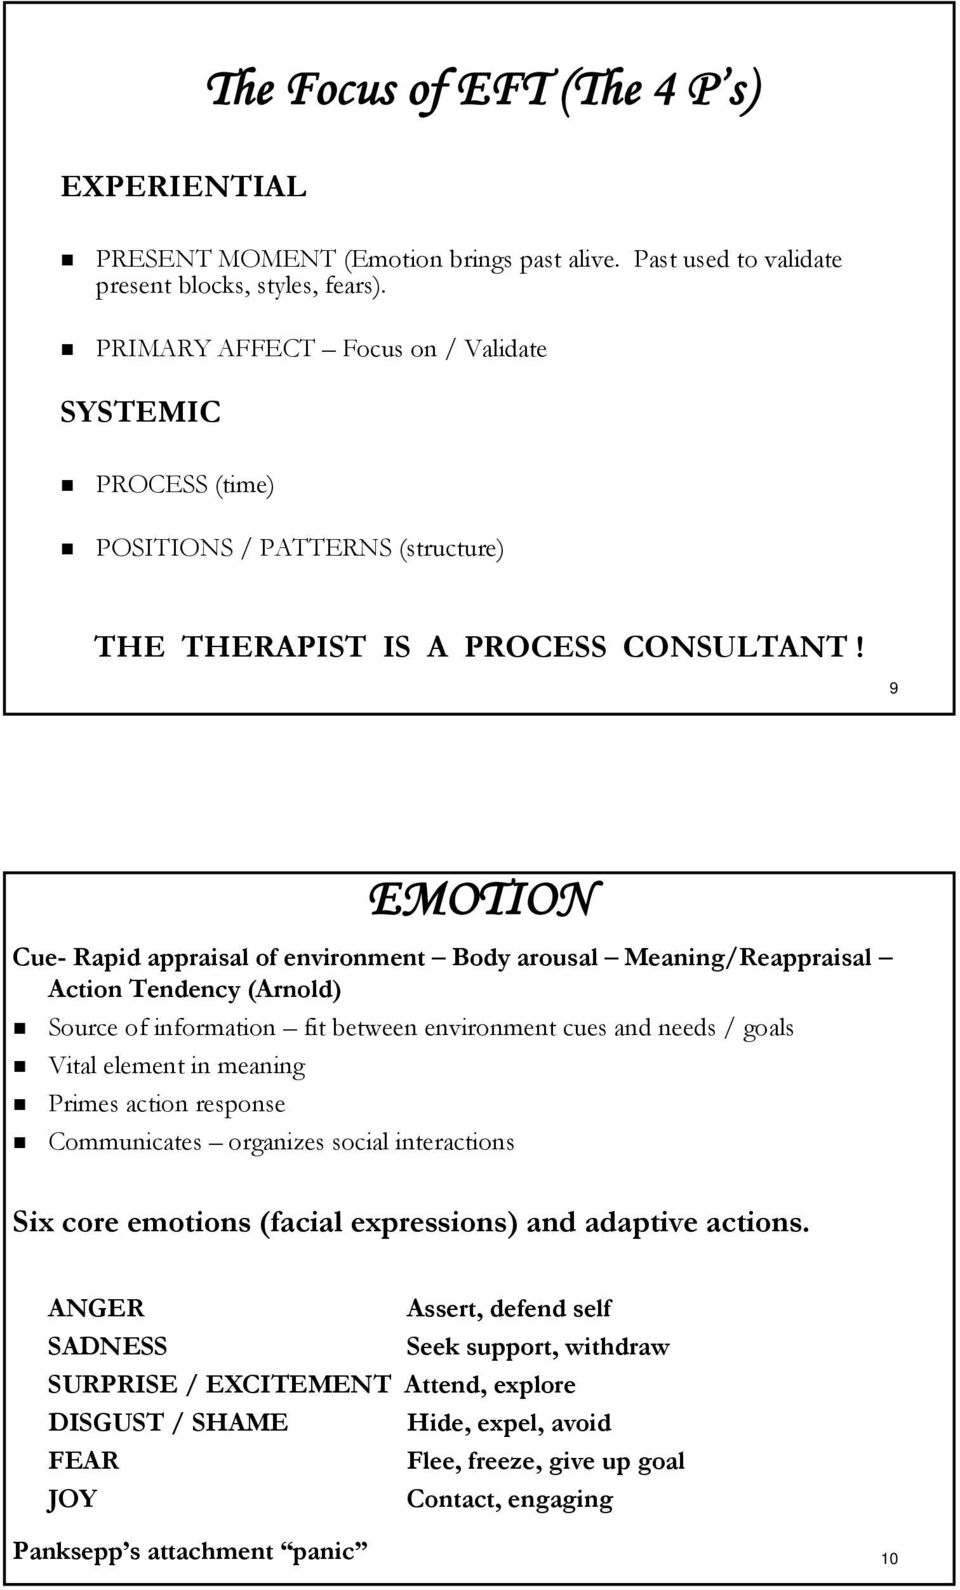 9 EMOTION Cue- Rapid appraisal of environment Body arousal Meaning/Reappraisal Action Tendency (Arnold) Source of information fit between environment cues and needs / goals Vital element in meaning